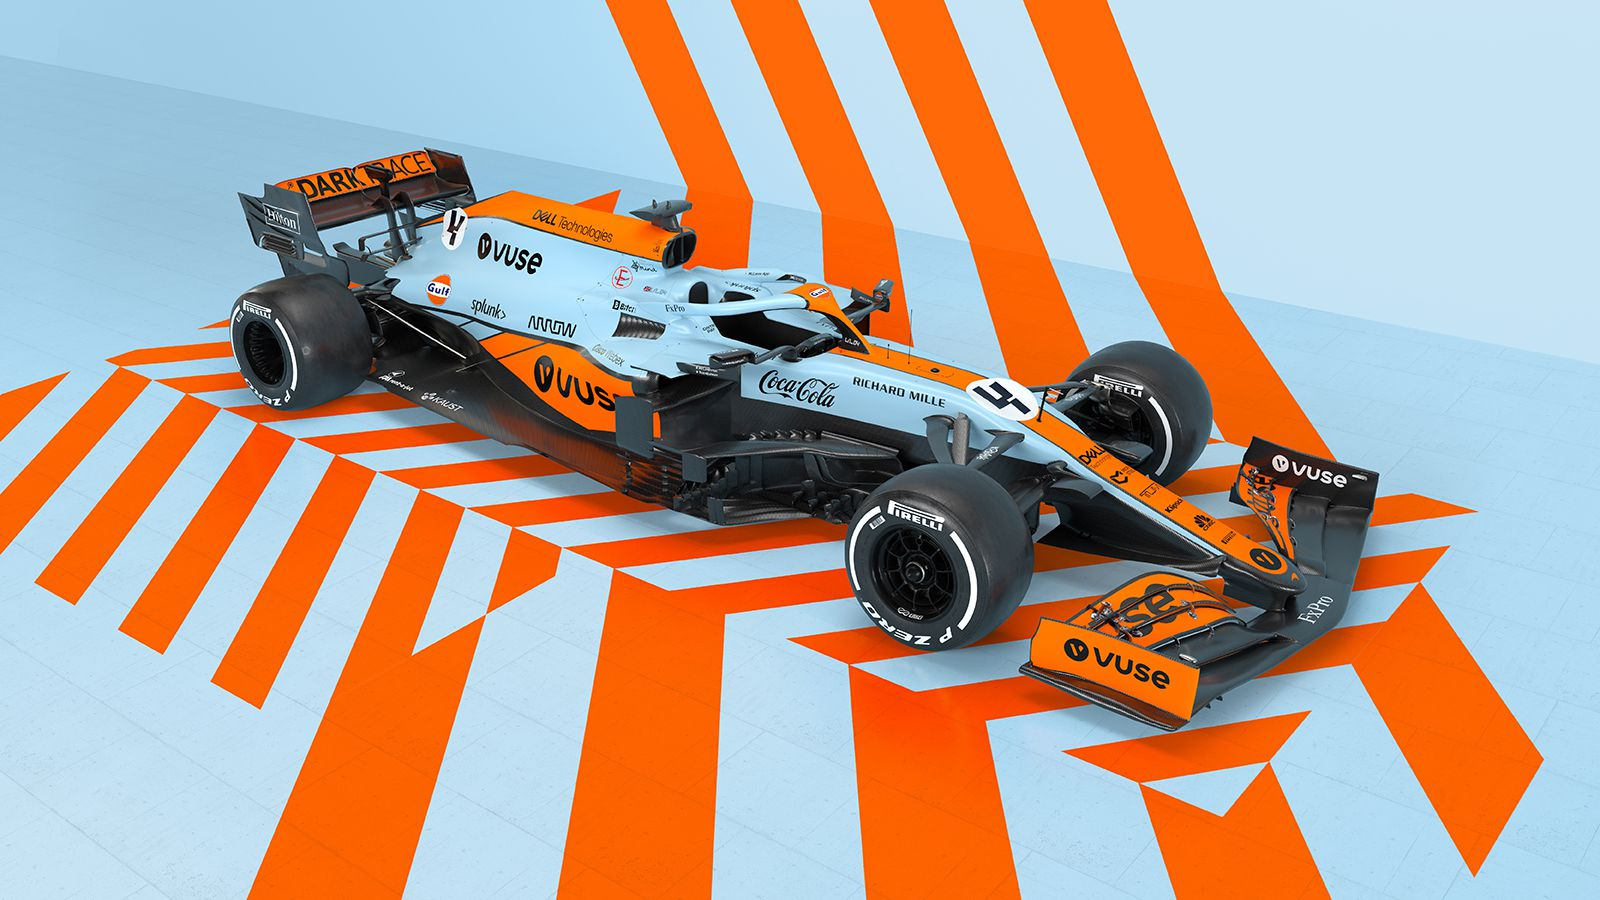 McLaren Revives the Iconic 'Gulf' Livery for Monaco